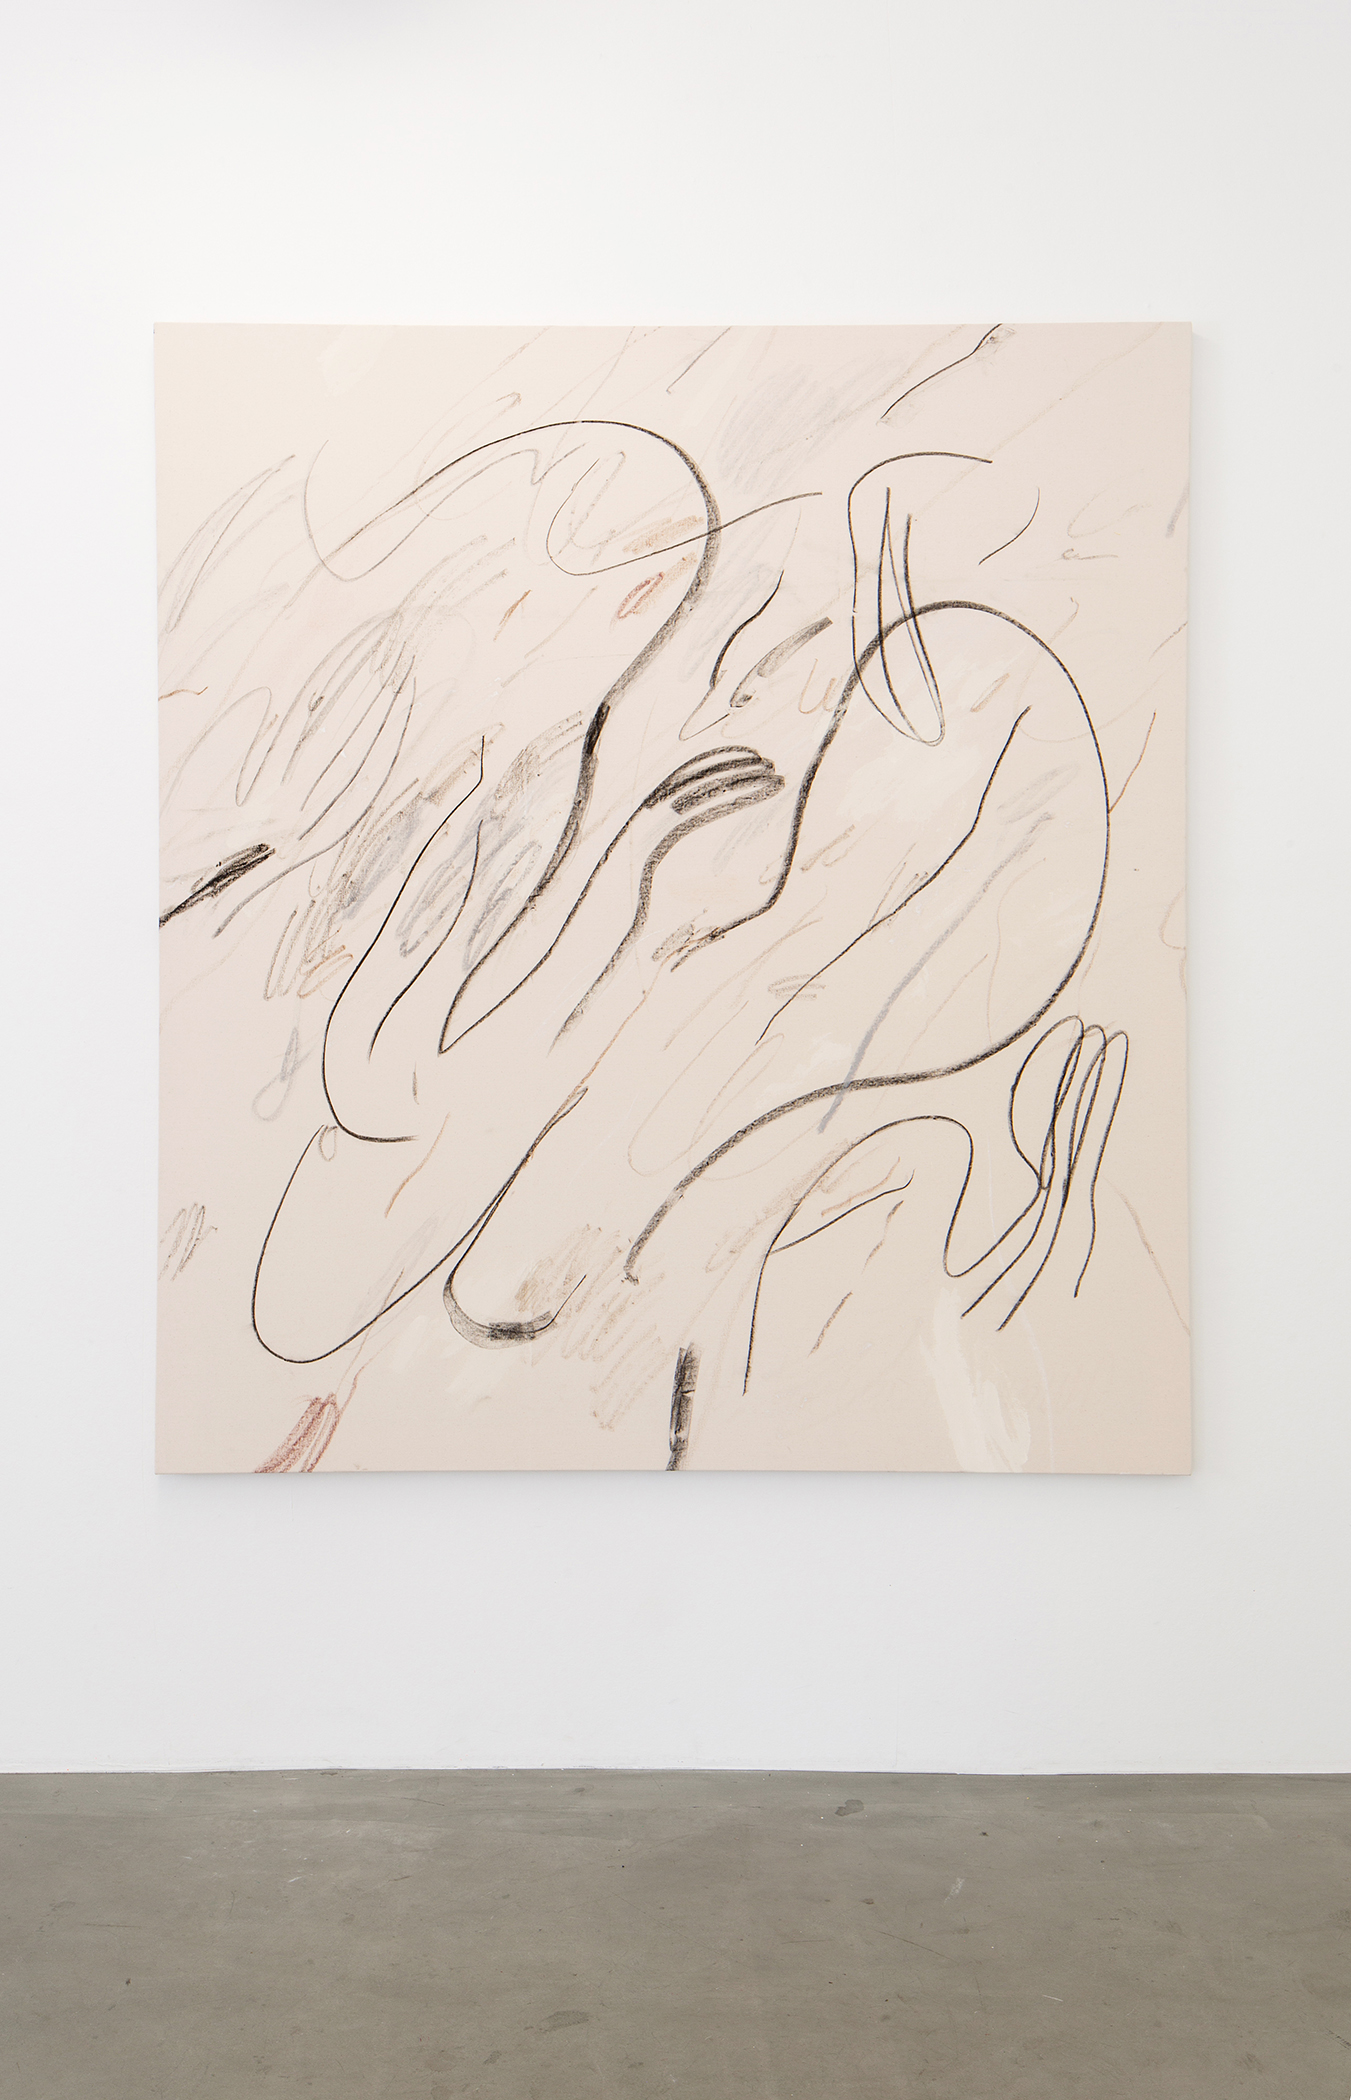 Alina Vergnano,  A Wave A Current A Name , 2019, Acrylic, oil stick and pastels on cotton, 130 x 140 cm